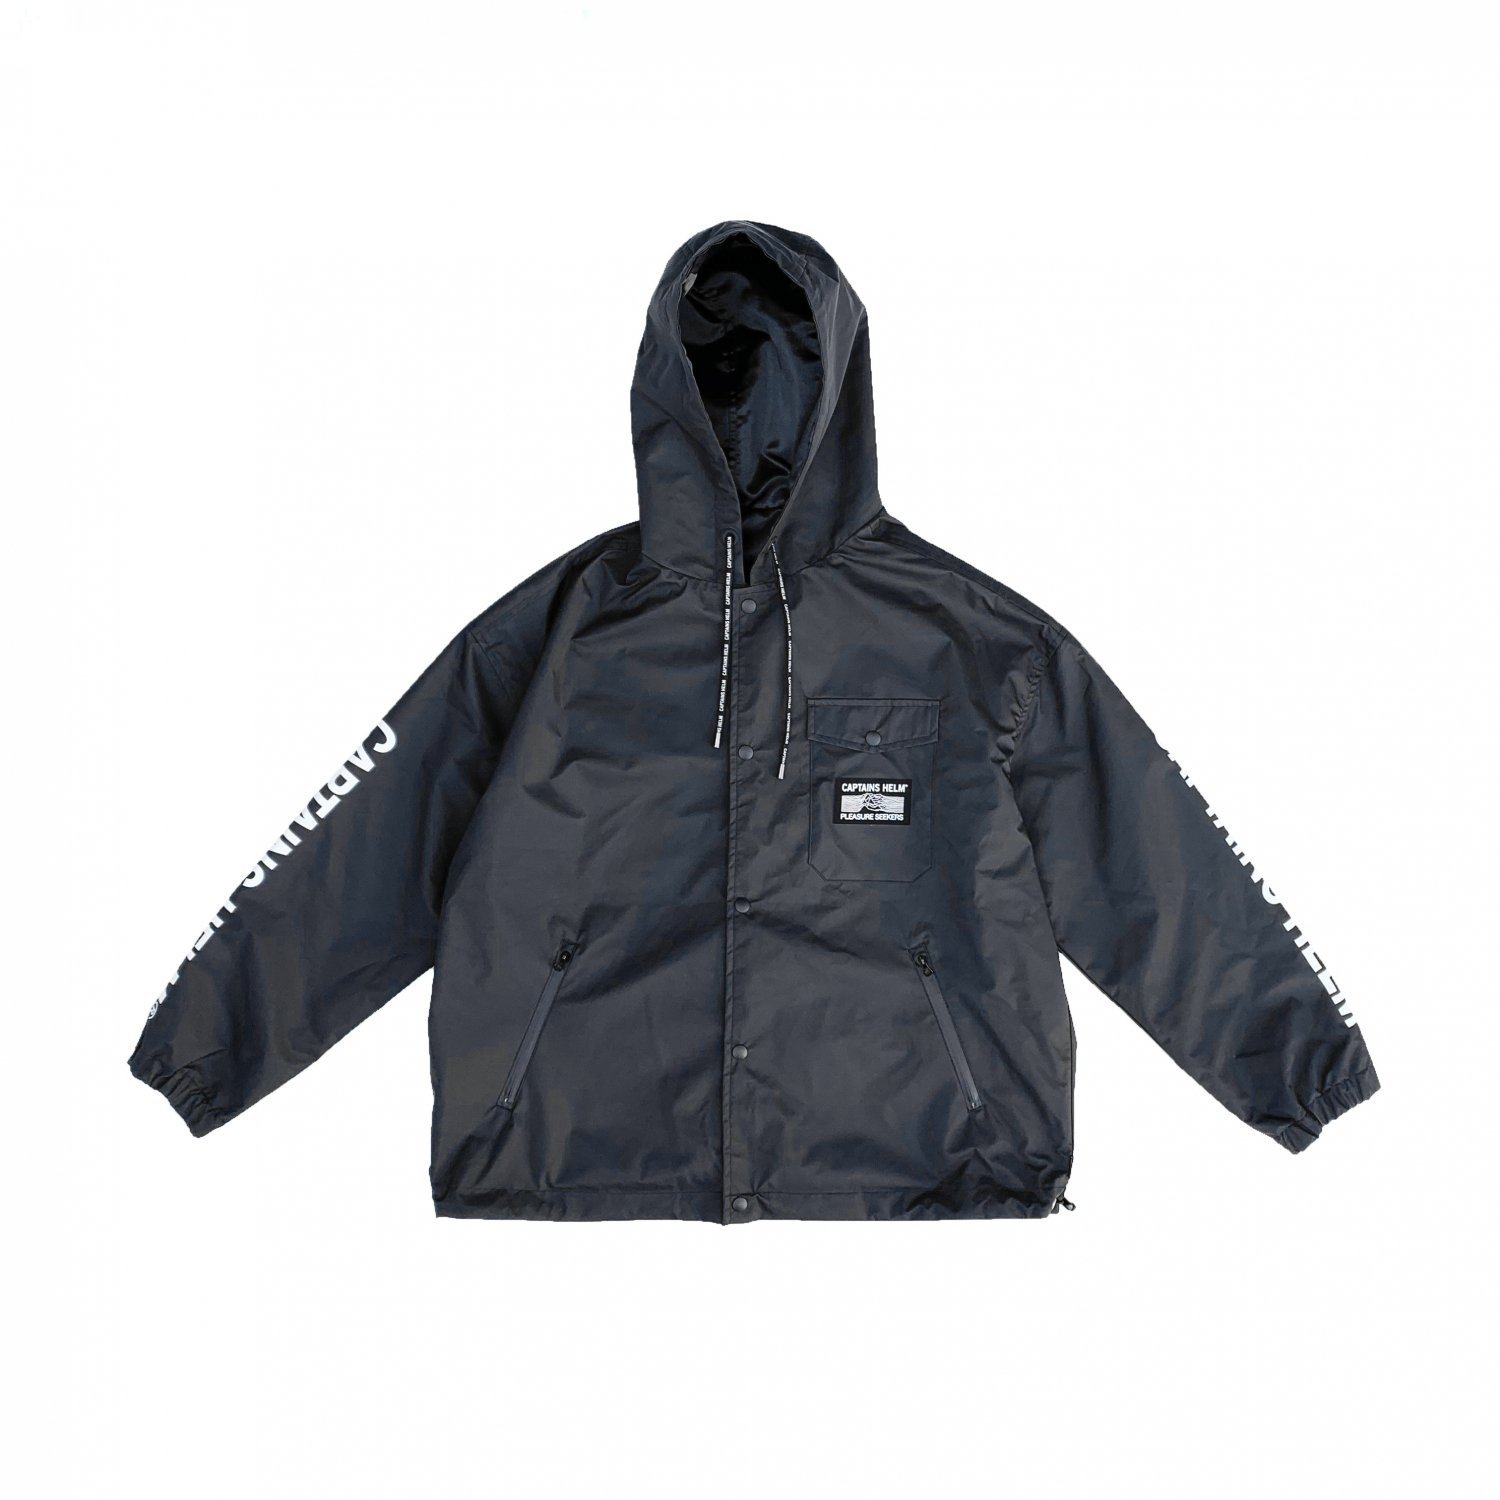 CAPTAINS HELM #FIRE & WATER PROOF REVERSIBLE JACKET